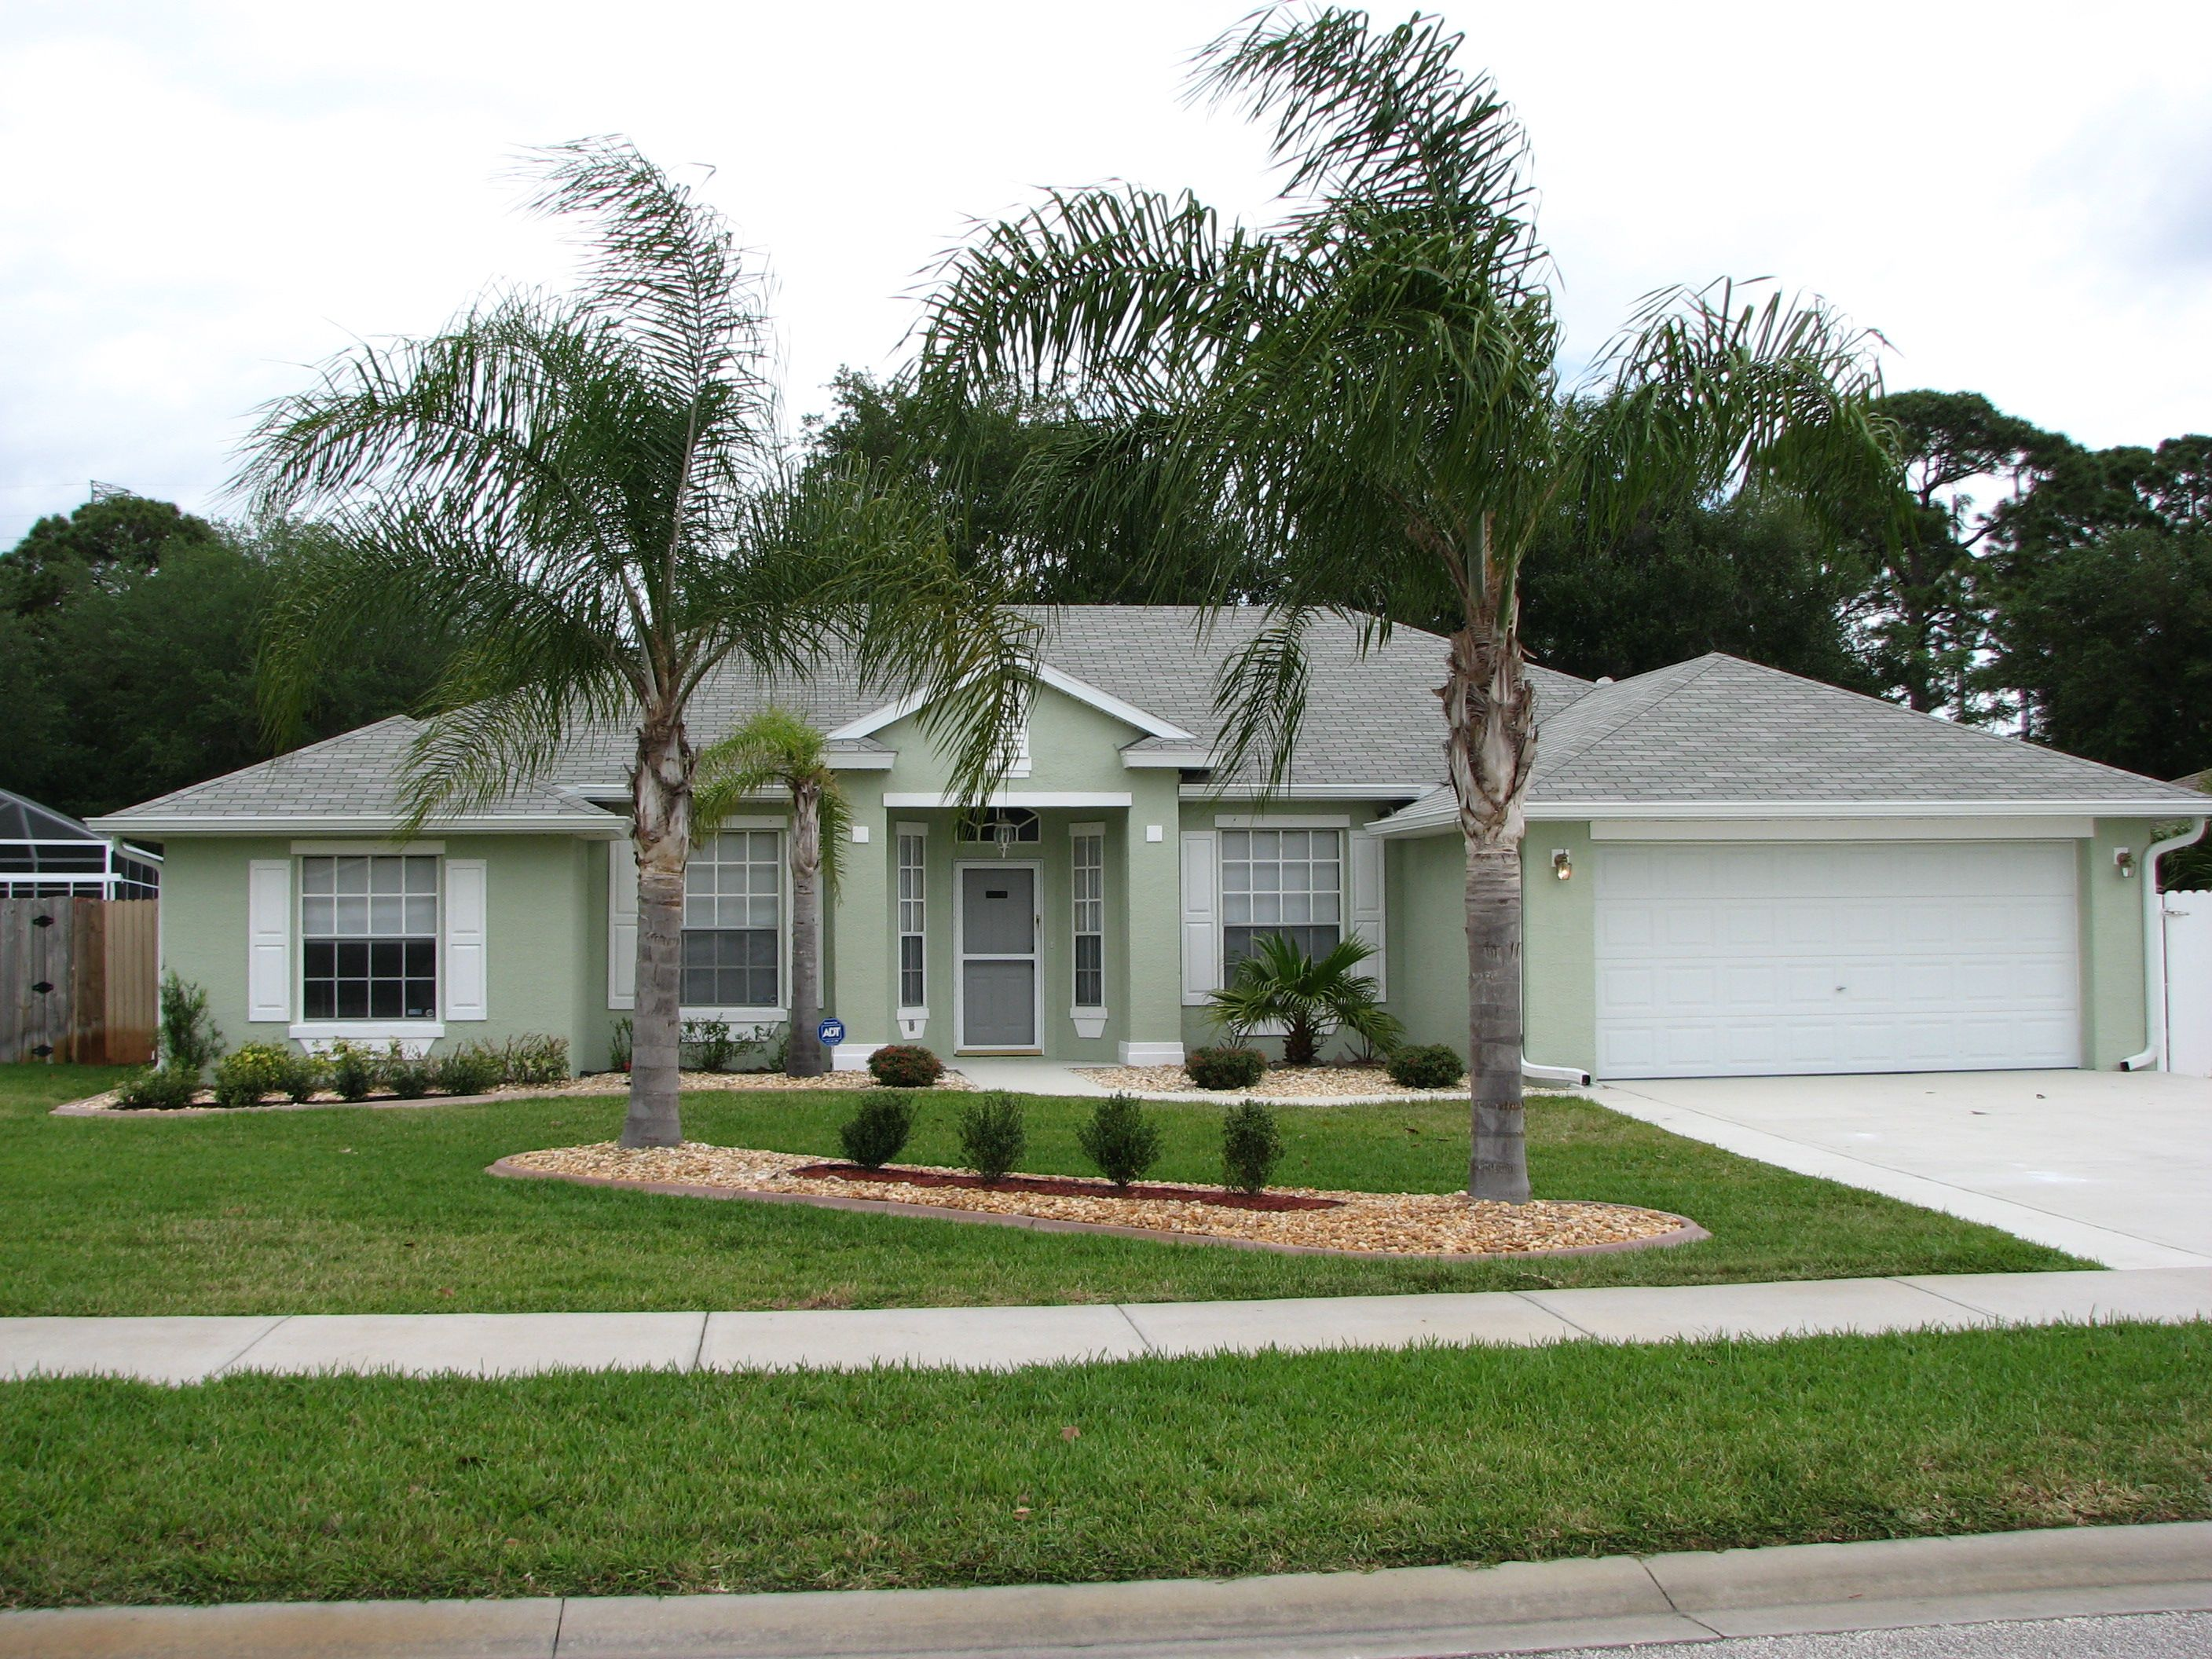 Beach house exterior paint colors house painting stucco - Painting a stucco house exterior ...